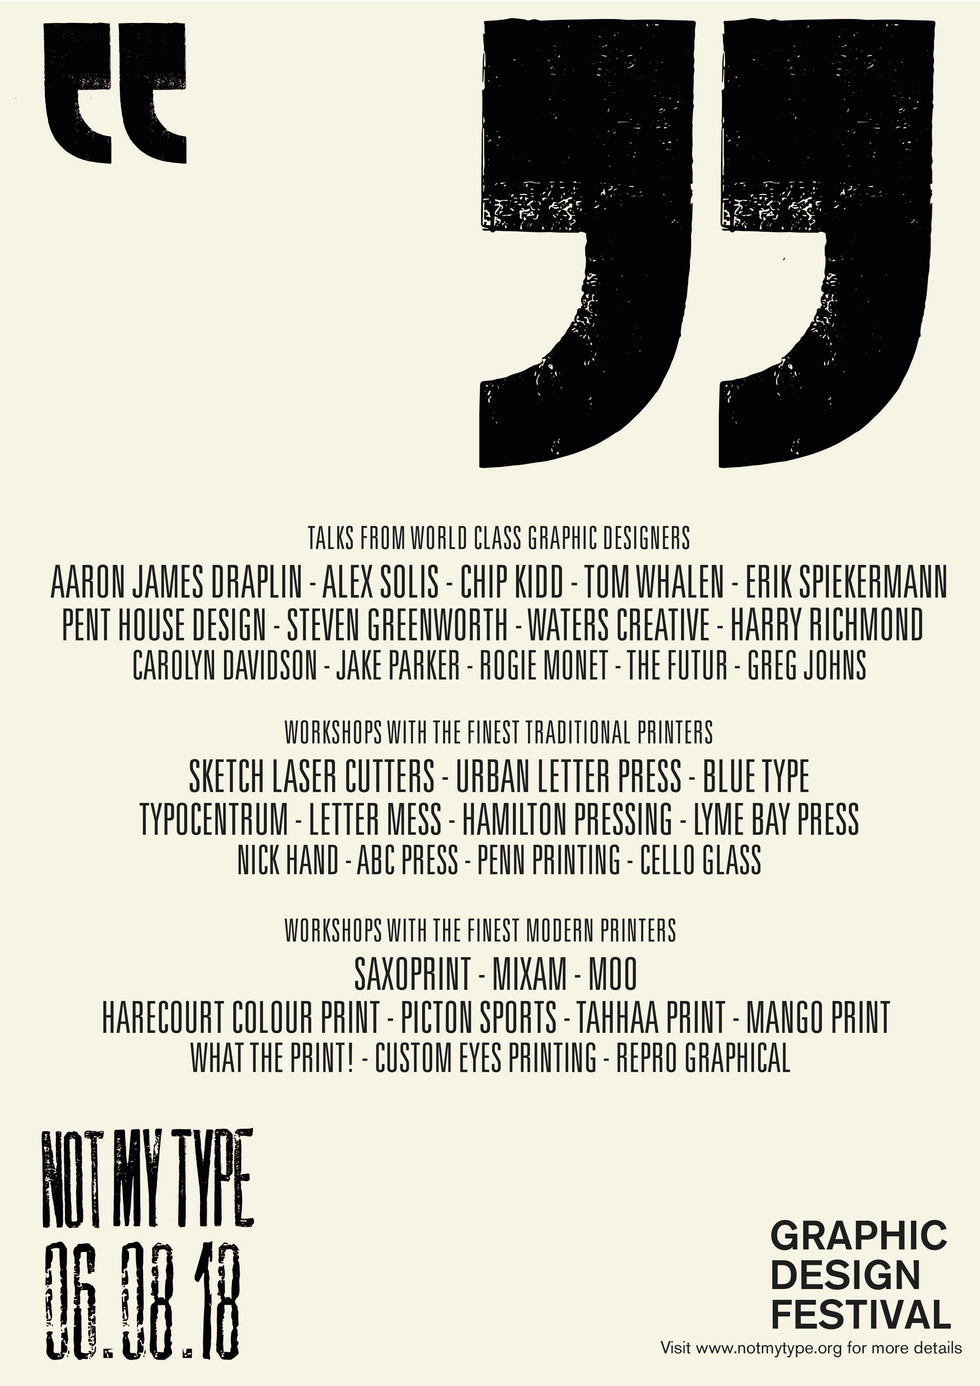 Not my type posters a3-03.jpg